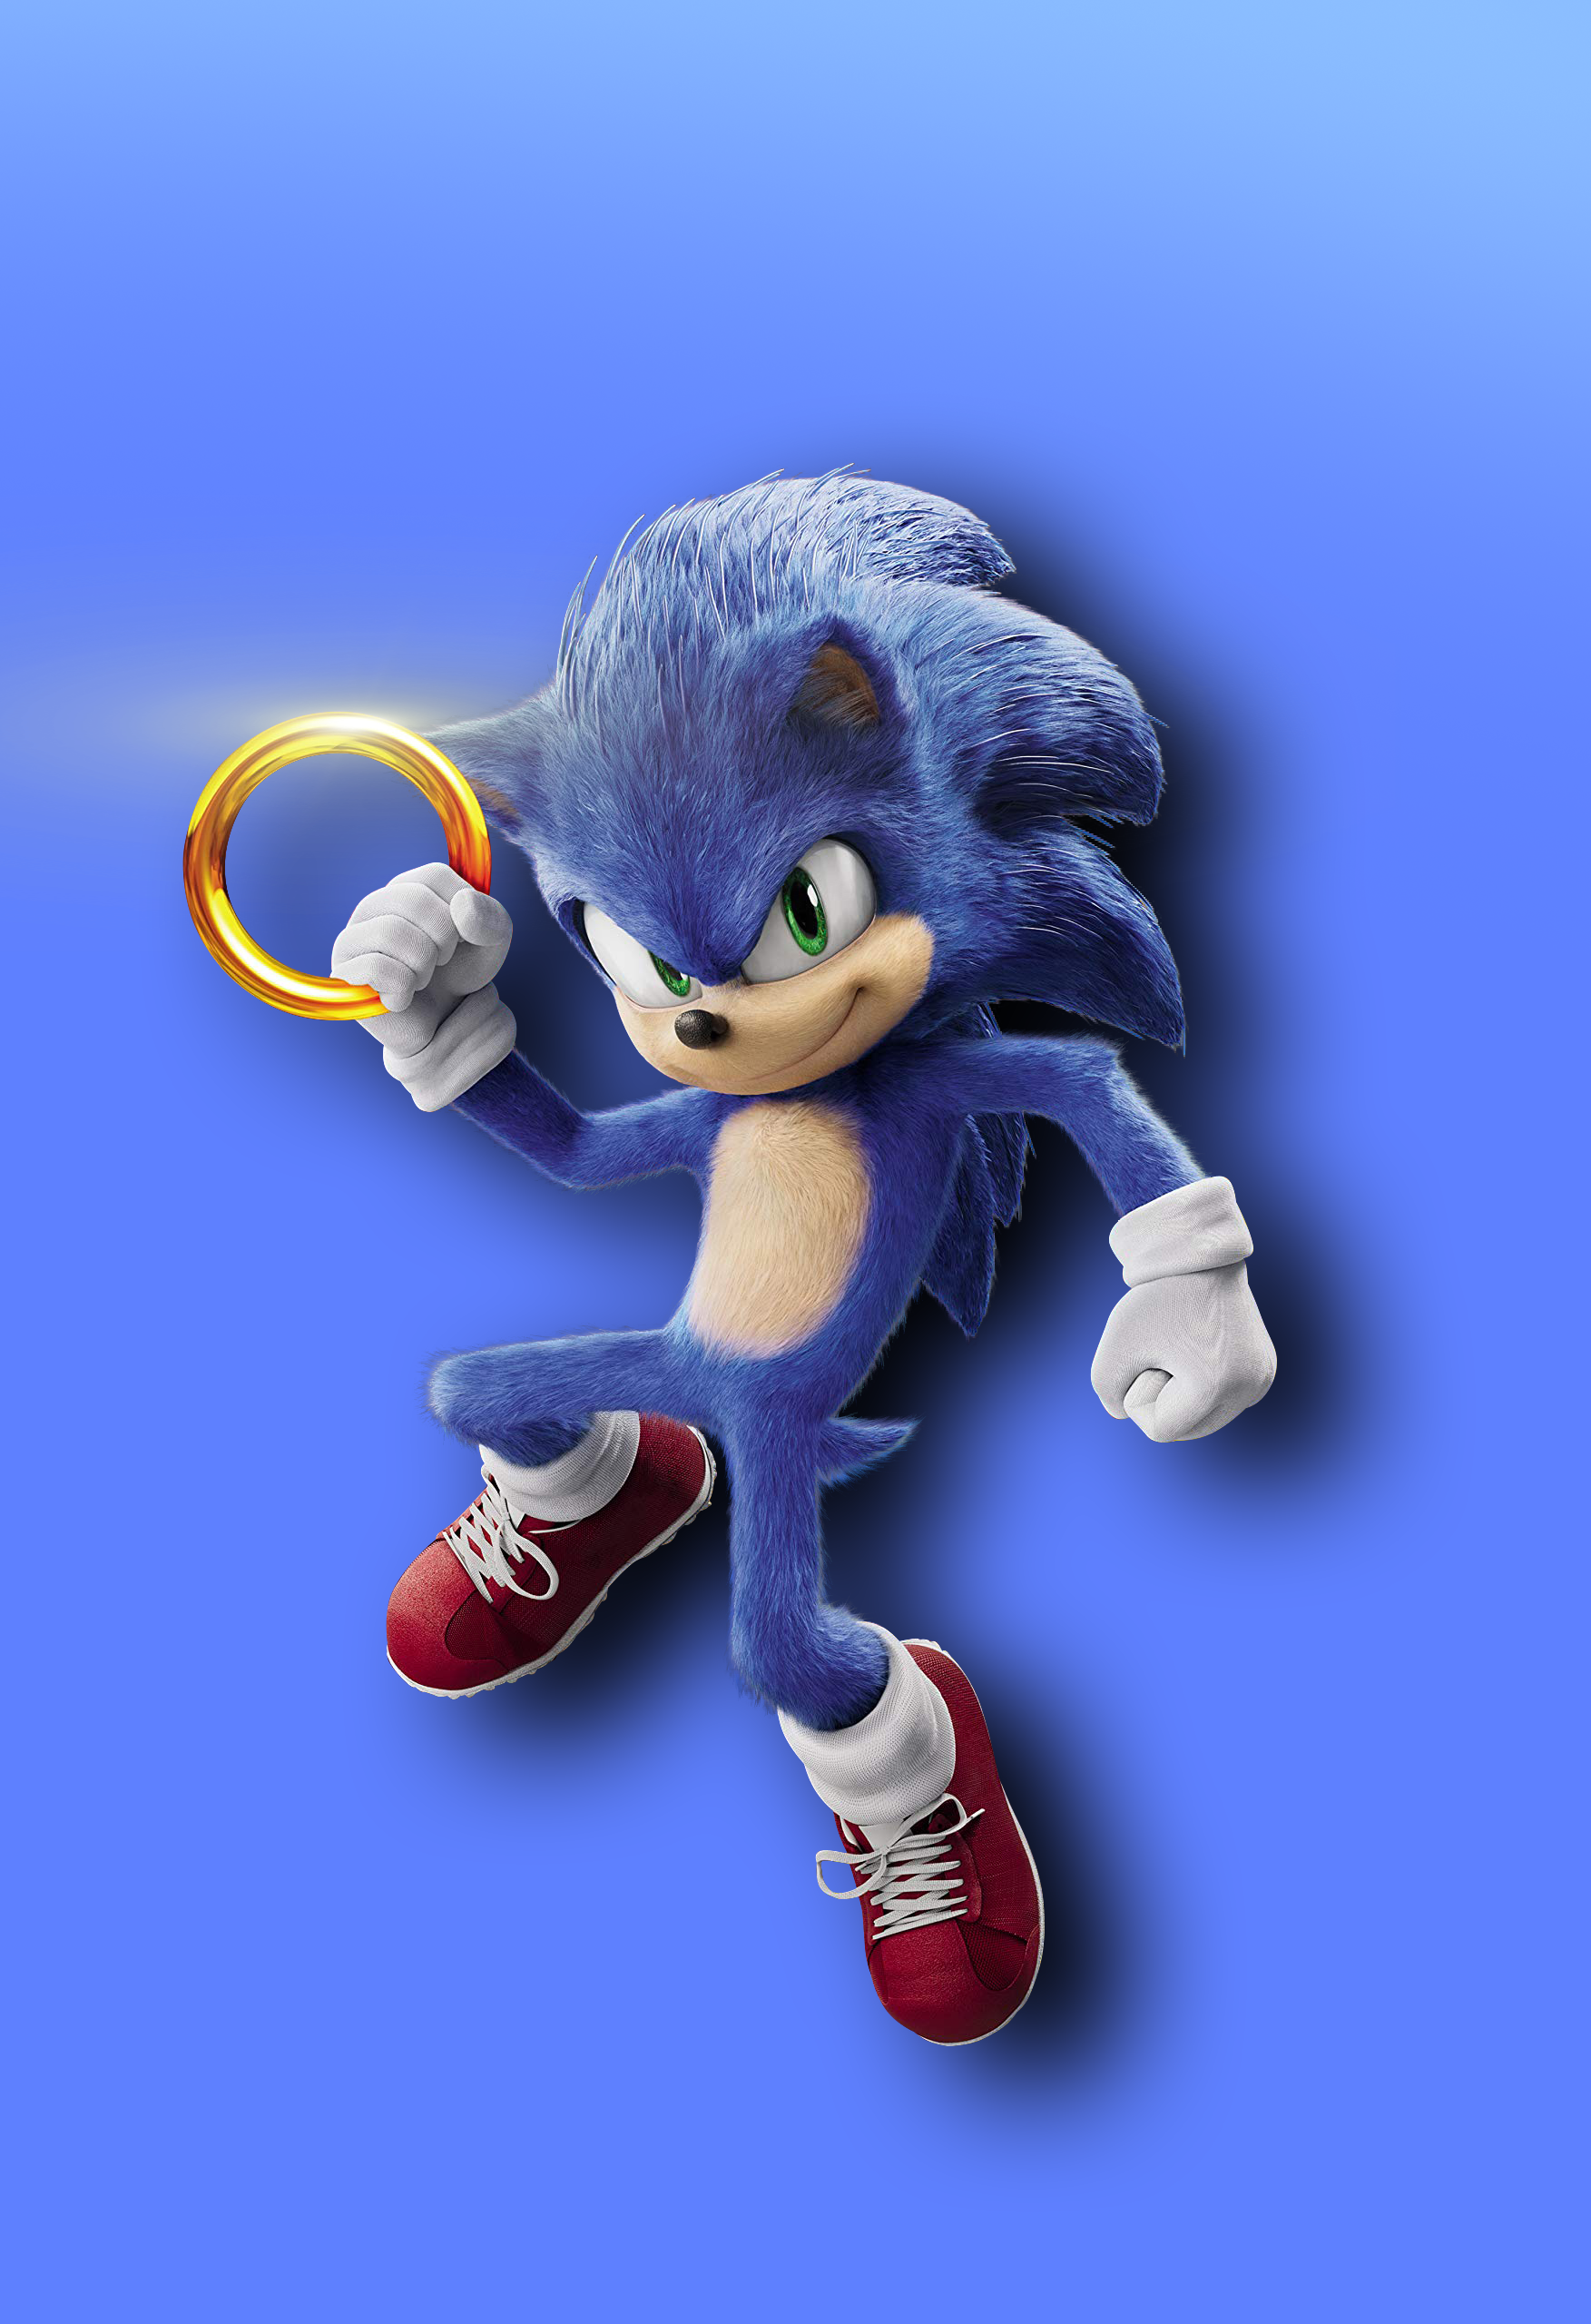 Sonic The Hedgehog By Hdgraphicvlad2010ful On Deviantart